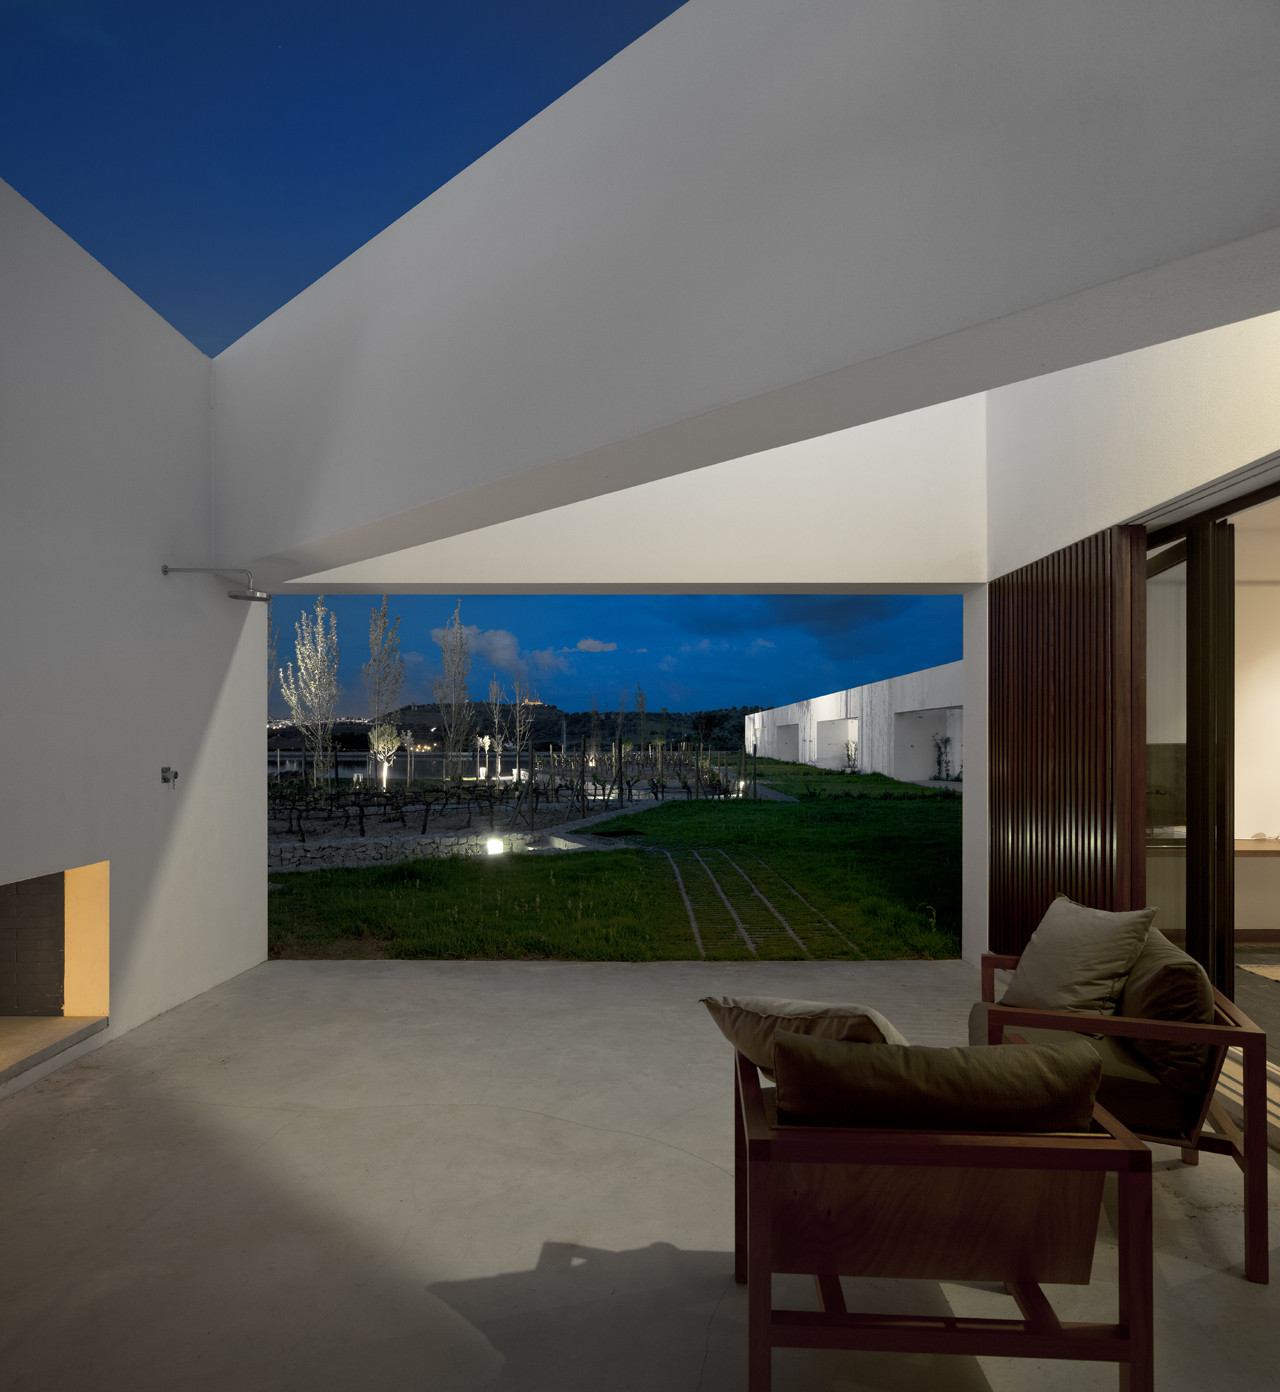 Vineyard L'AND Vineyards Resort: A Design and Wine Hotel discover the best luxury resorts 6